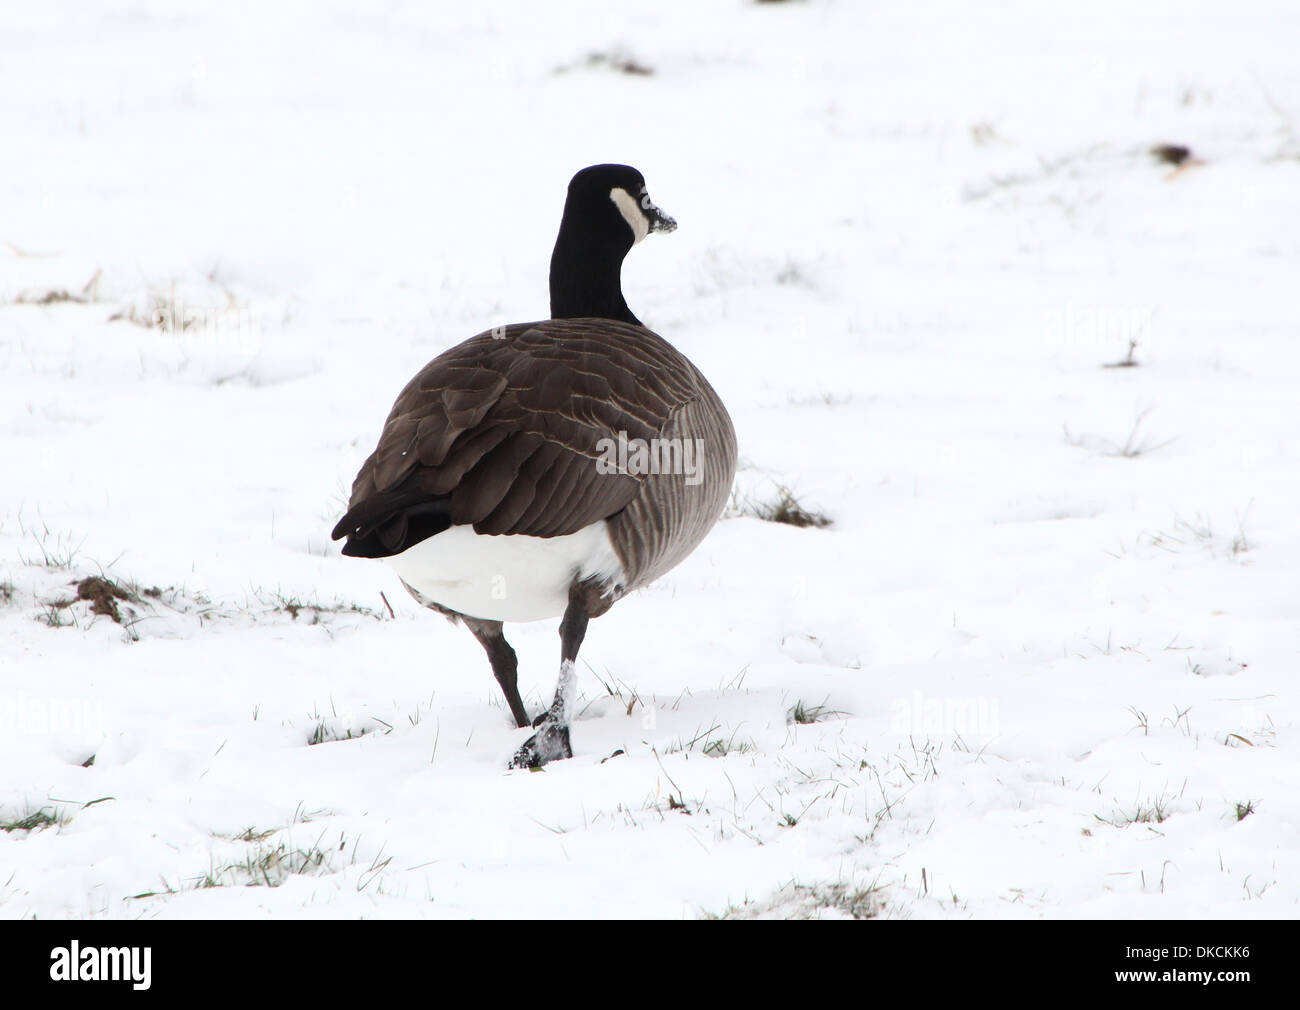 Canada Goose (Branta canadensis) walking away from the camera in  snow setting - Stock Image